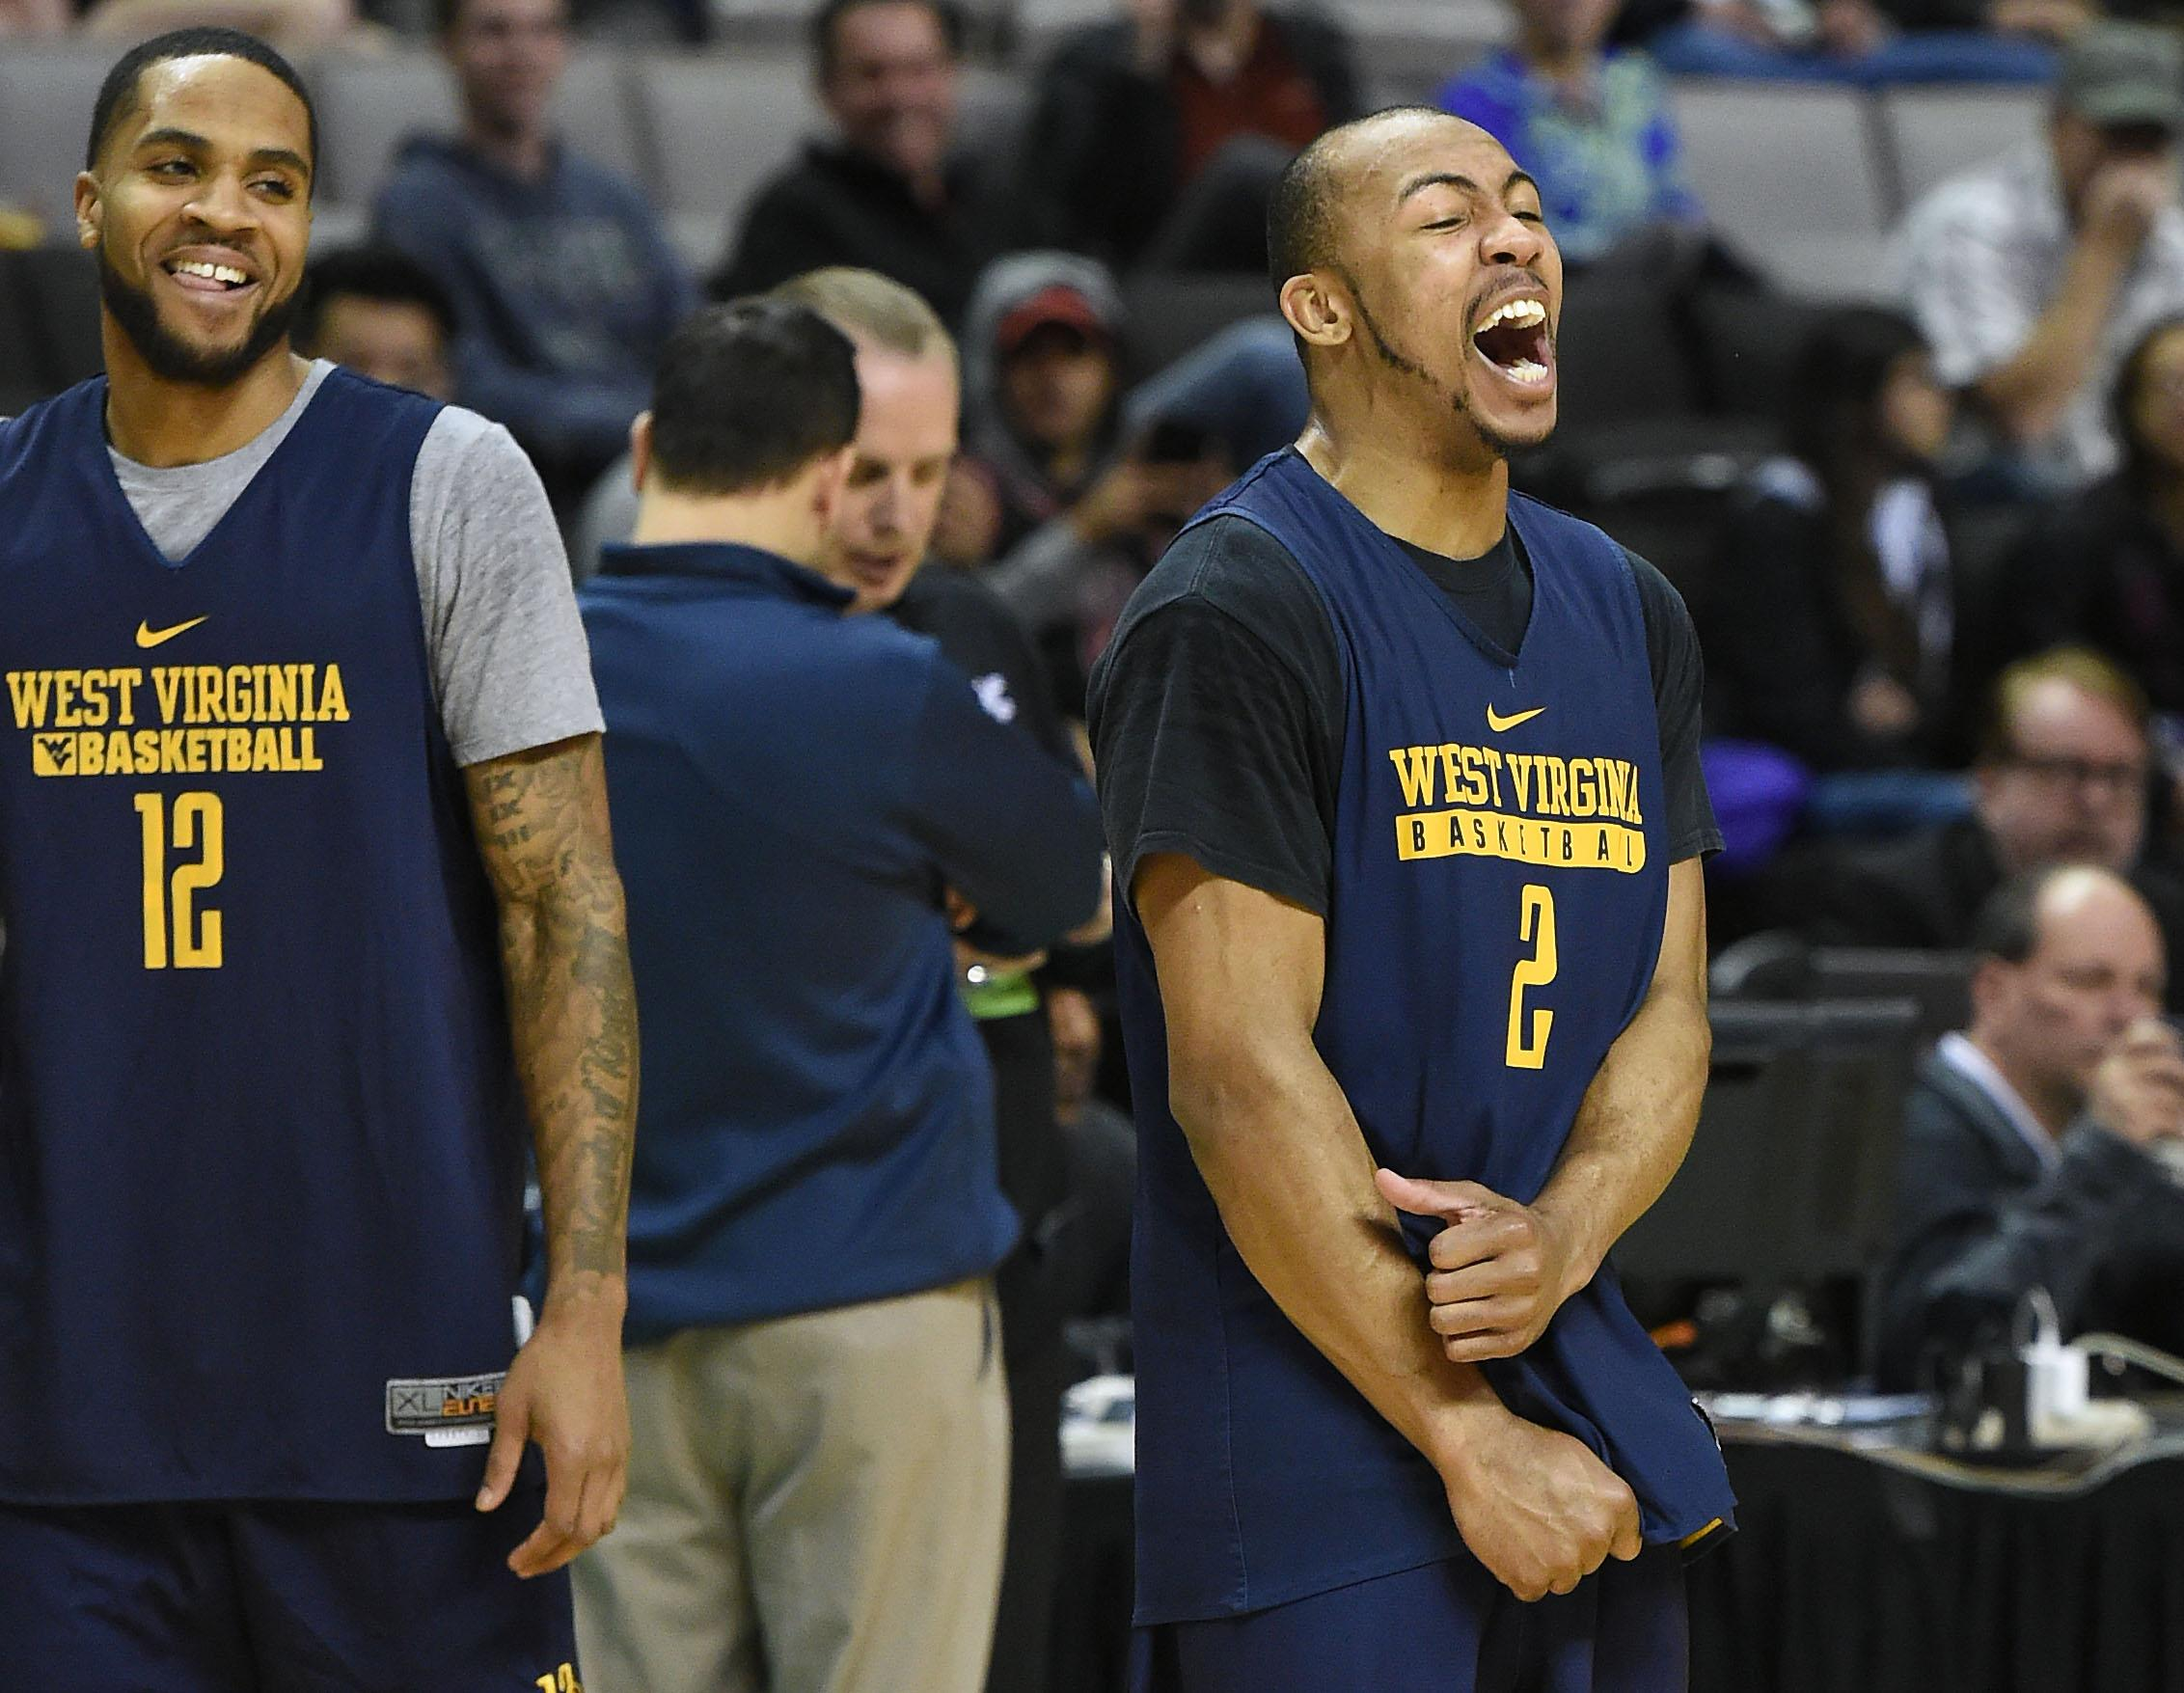 Analyzing the final possession of the West Virginia season